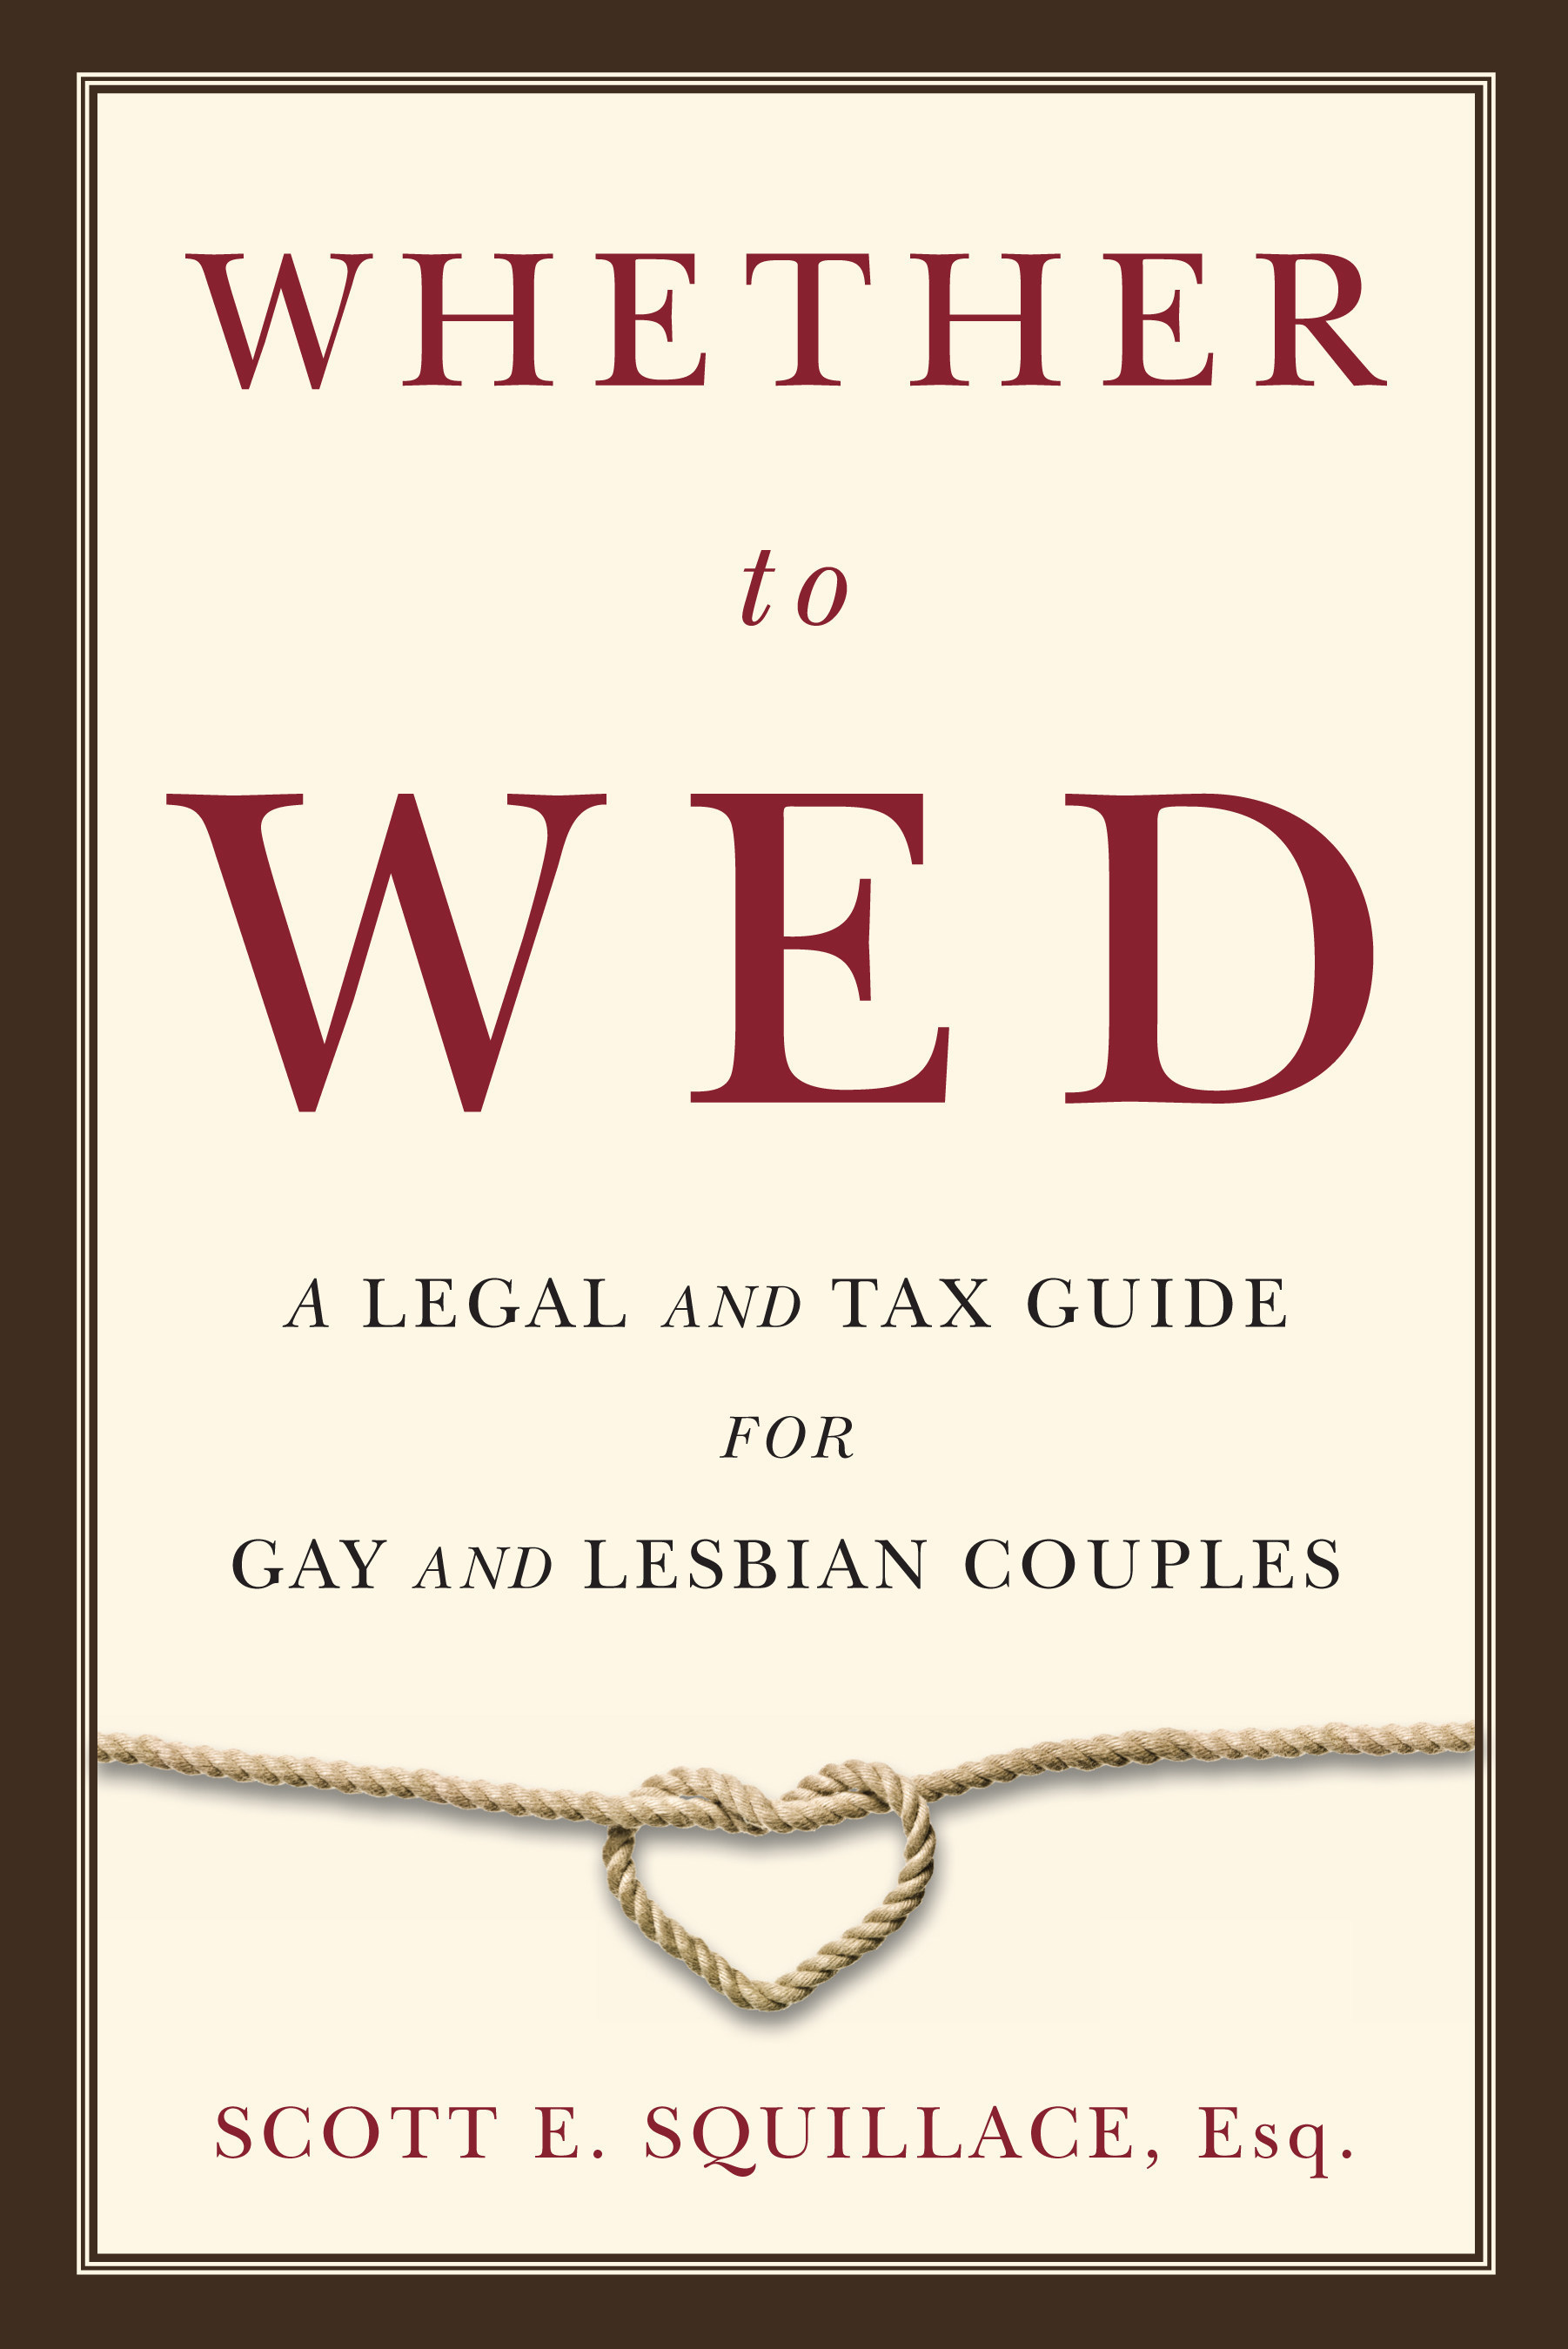 WHETHER TO WED Offers Tips for Gay and Lesbian Couples